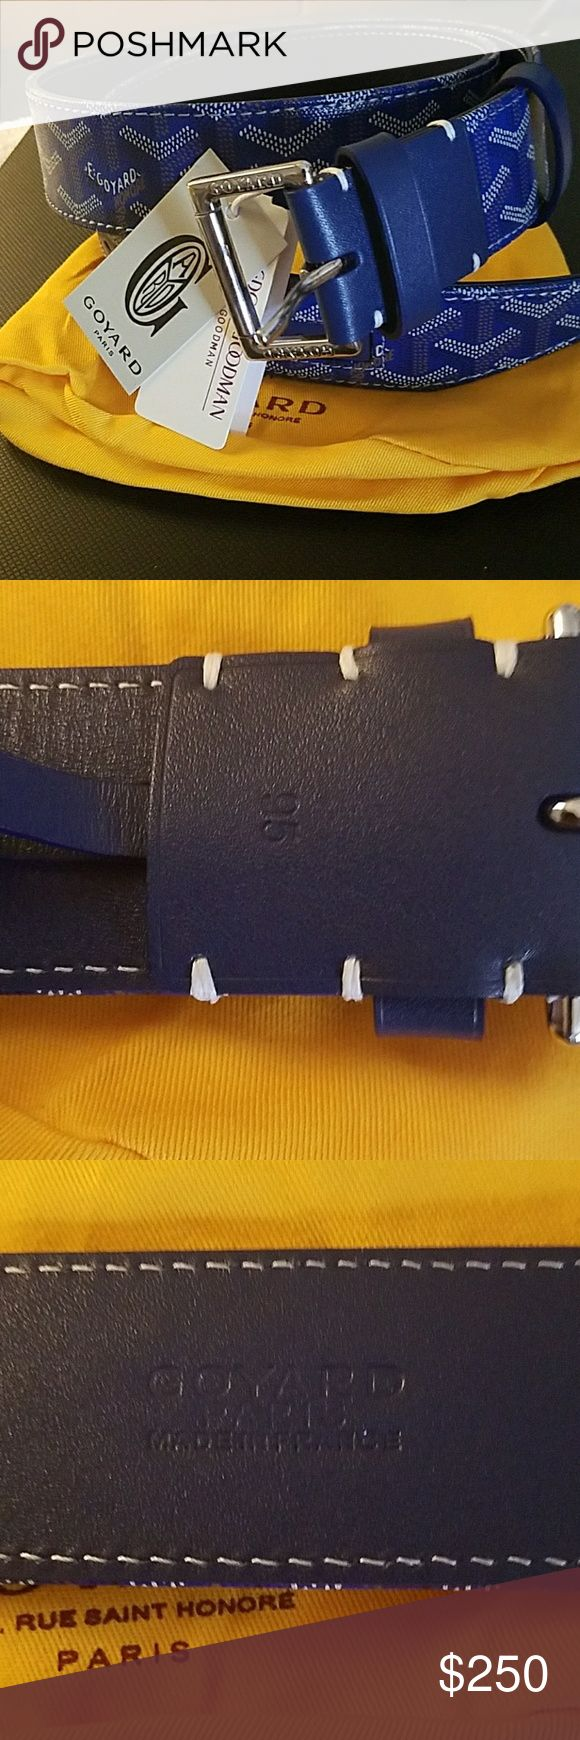 Goyard belt **best BEST OFFERS WELCOME** This is authentic and new with tags GOYARD belt SIZE 95cm will fit sizes 34-38 This is the BLUE colored Goyard monogram leather belt with SILVER buckle comes with dust bag and tags, & box. **NO LOW BALL OFFERS** Goyard Accessories Belts